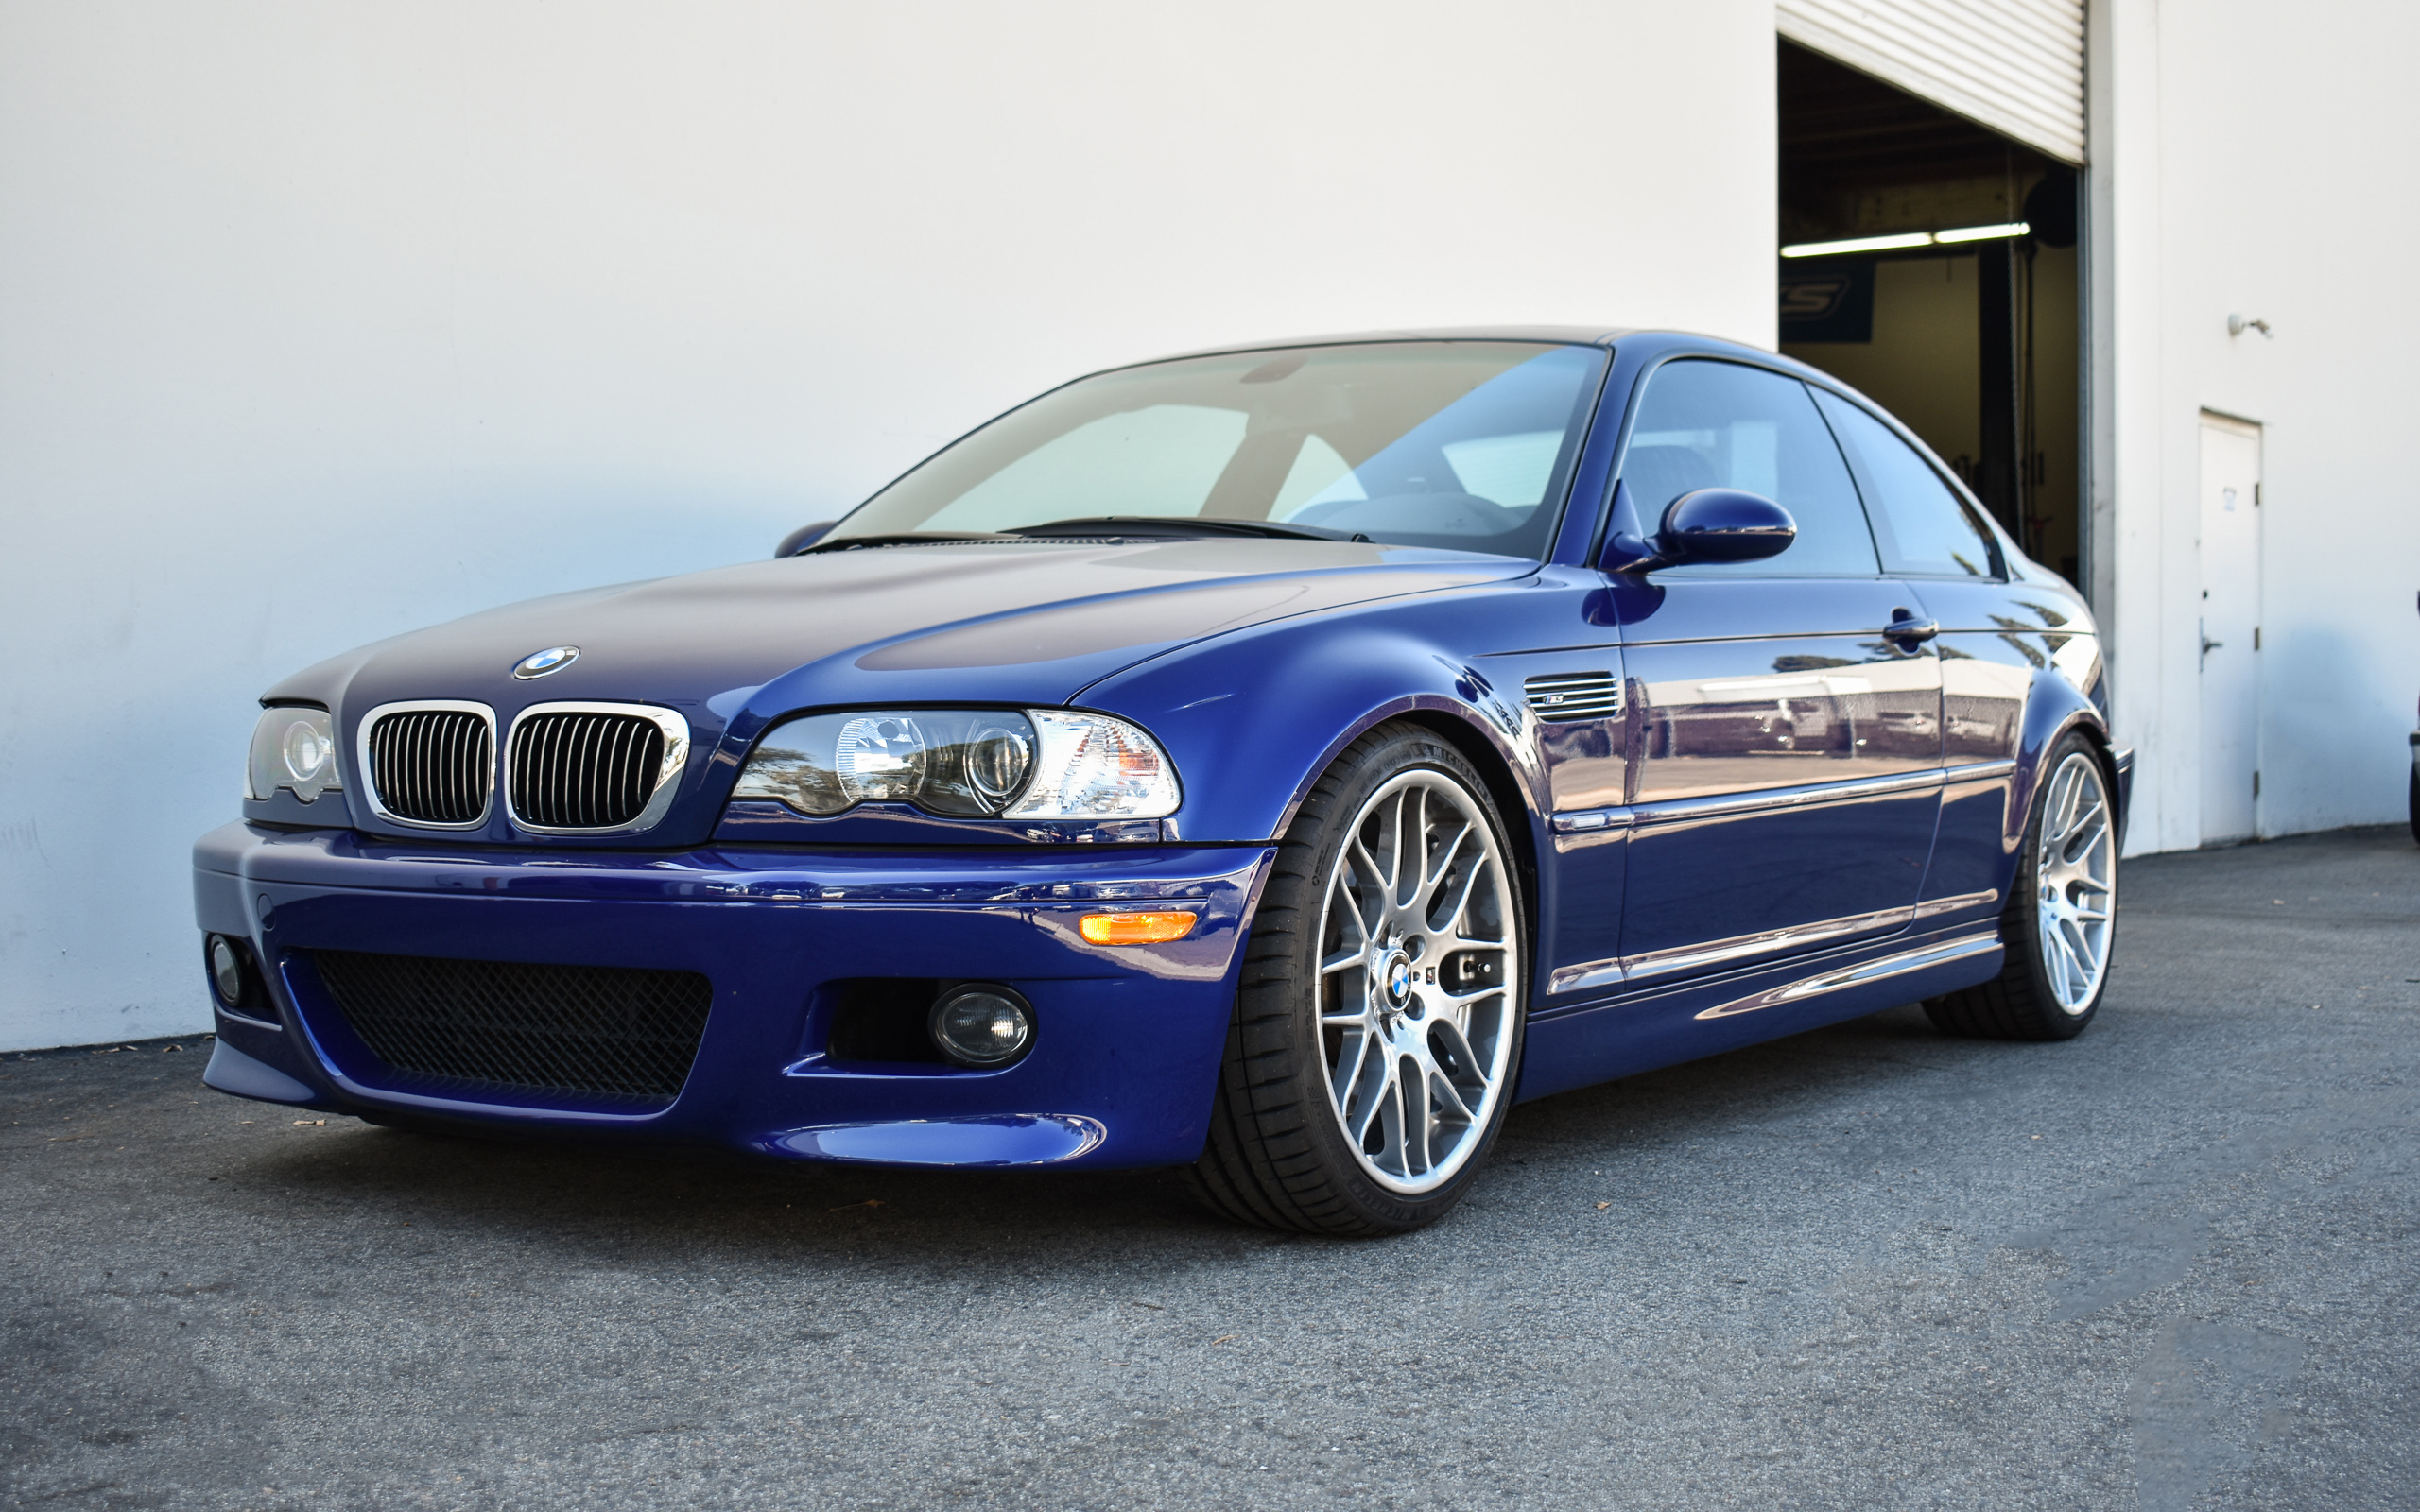 Interlagos Blue E46 M3 - KW V2, Eisenmann Exhaust